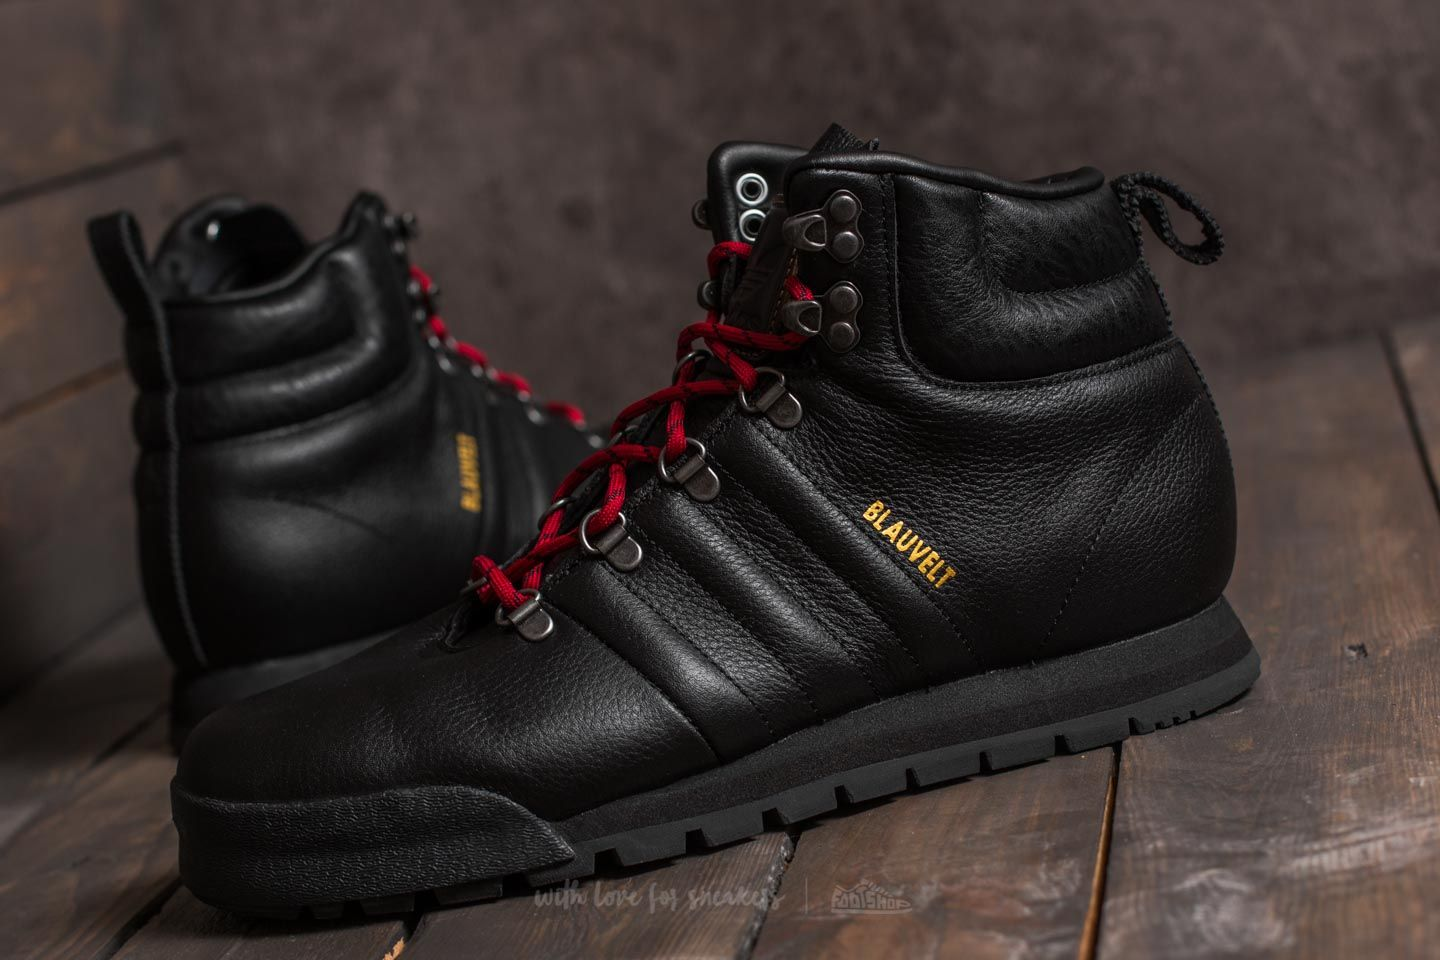 bd0d77f2d6b adidas Jake Blauvelt Boot Black 1/ Black 1/ University Red | Footshop